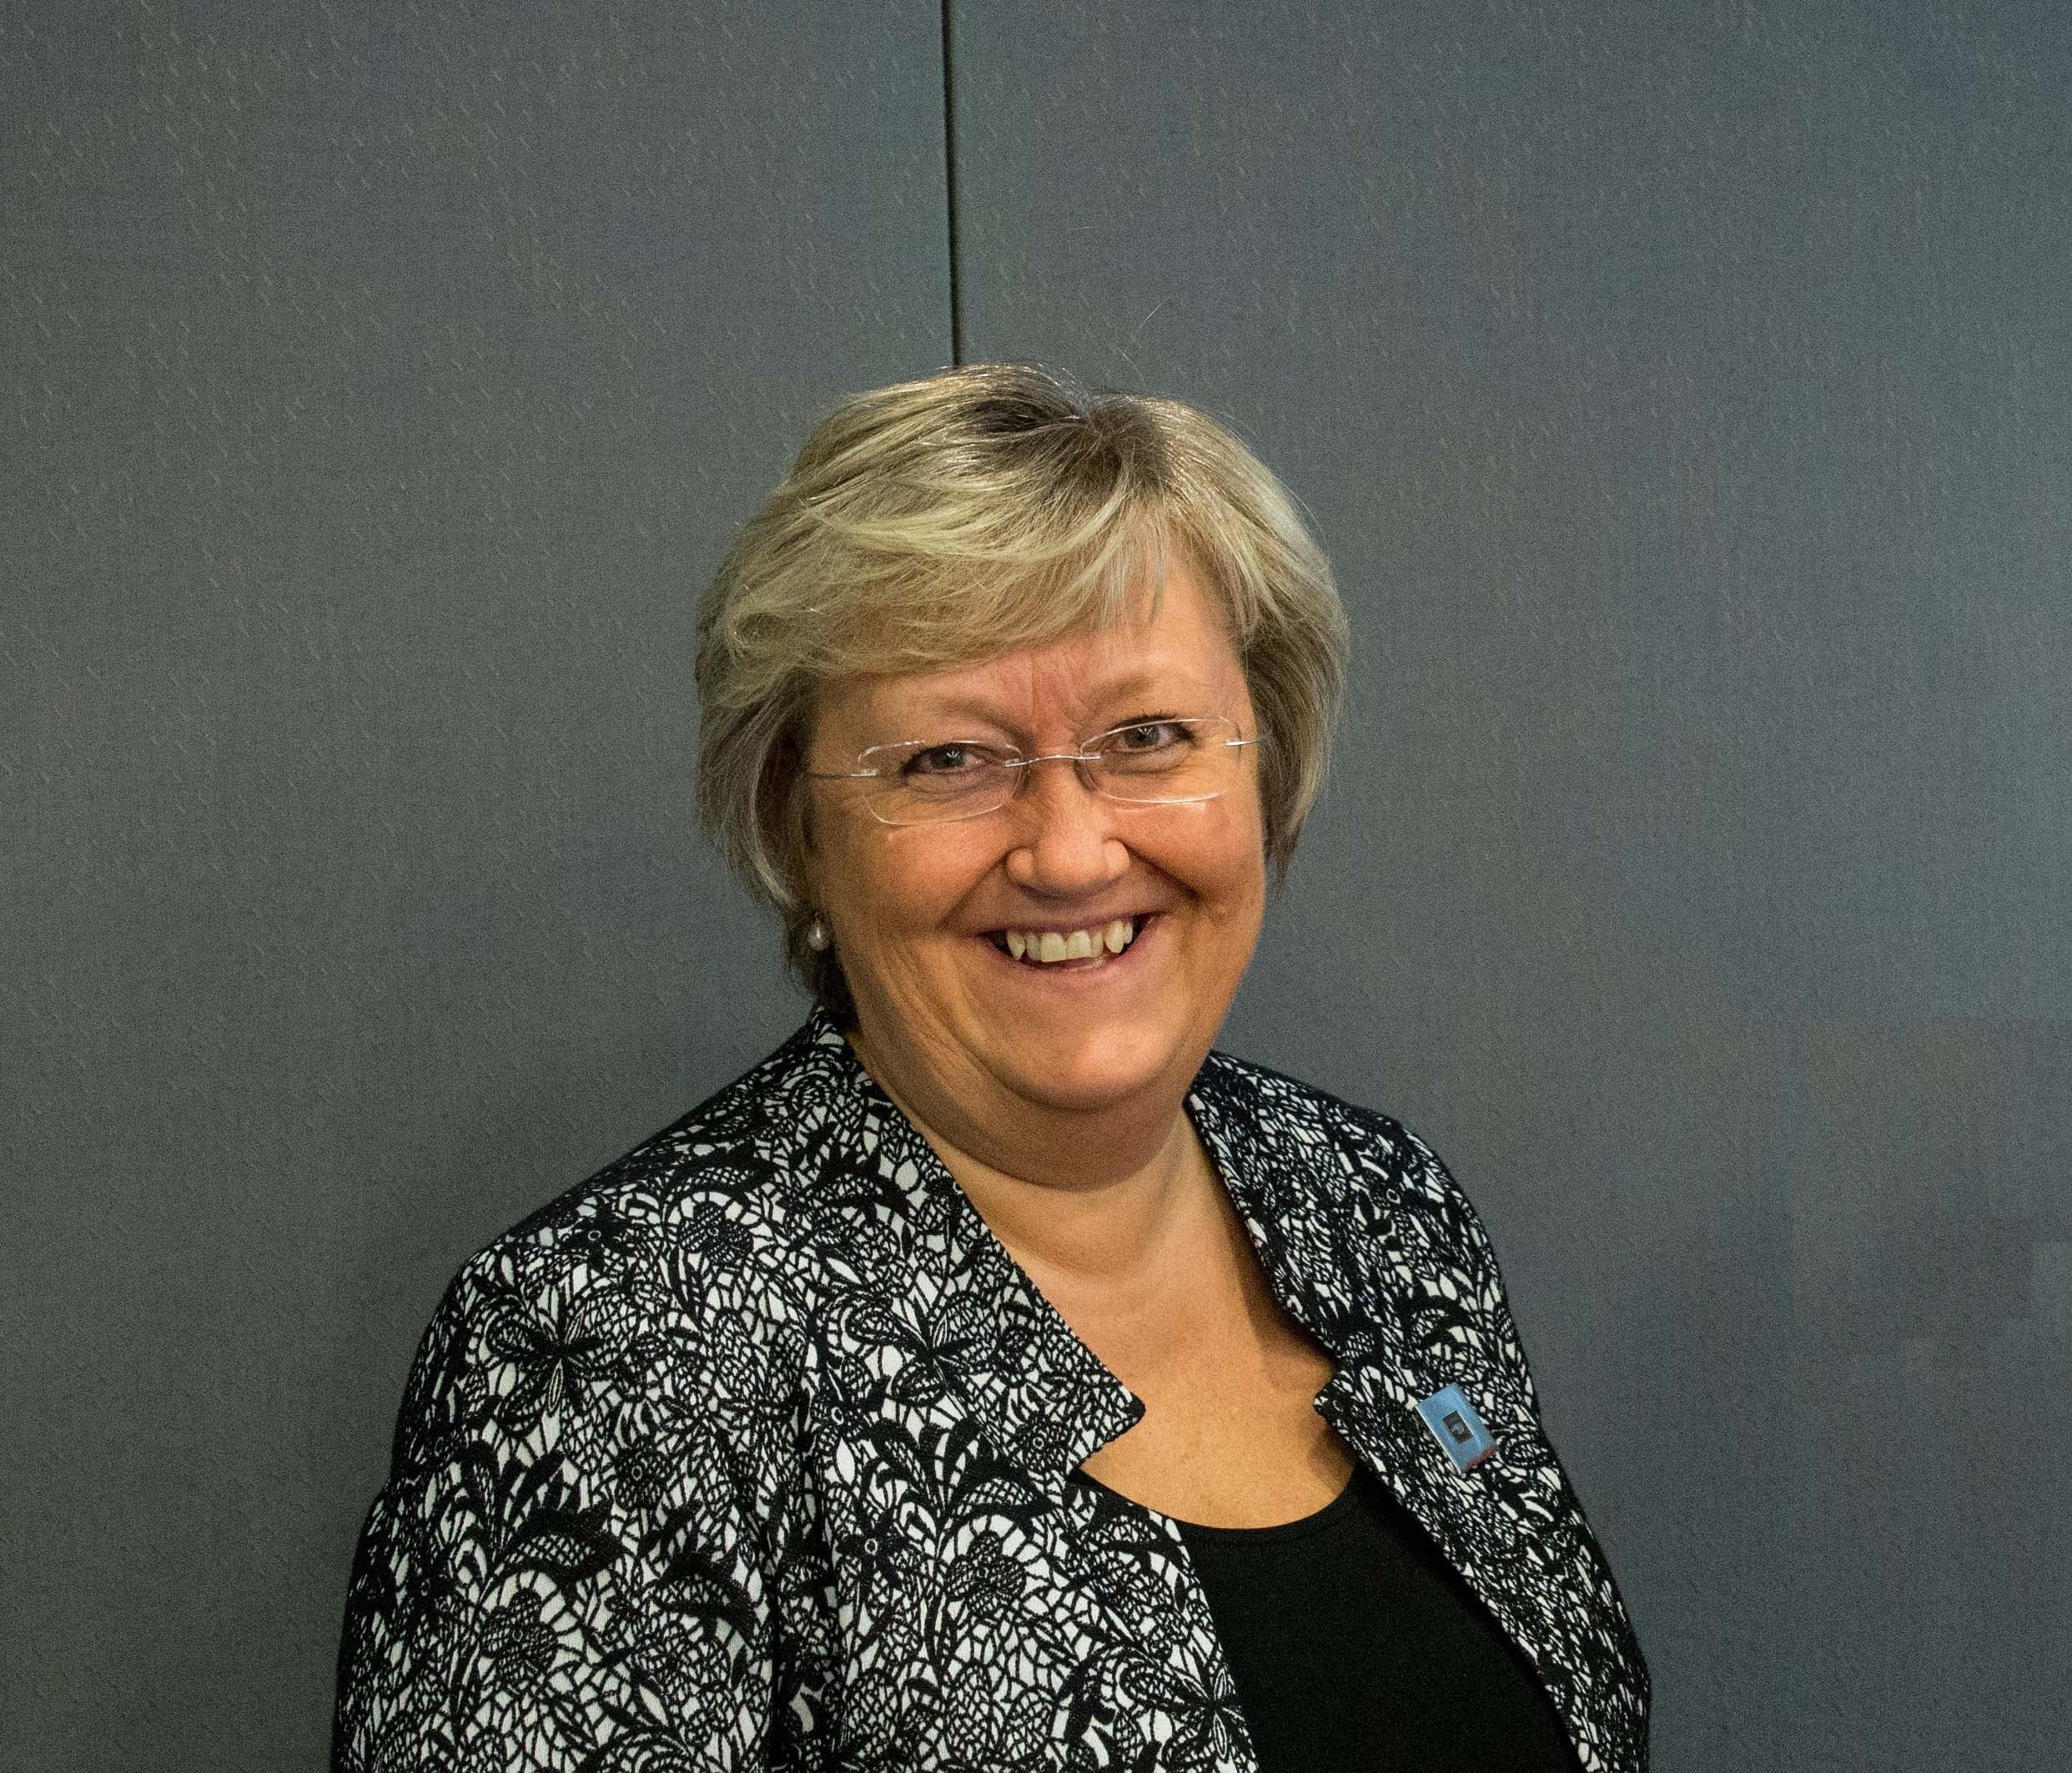 Elisabeth Vik Aspaker, the government minister in charge of Nordic cooperation in 2017